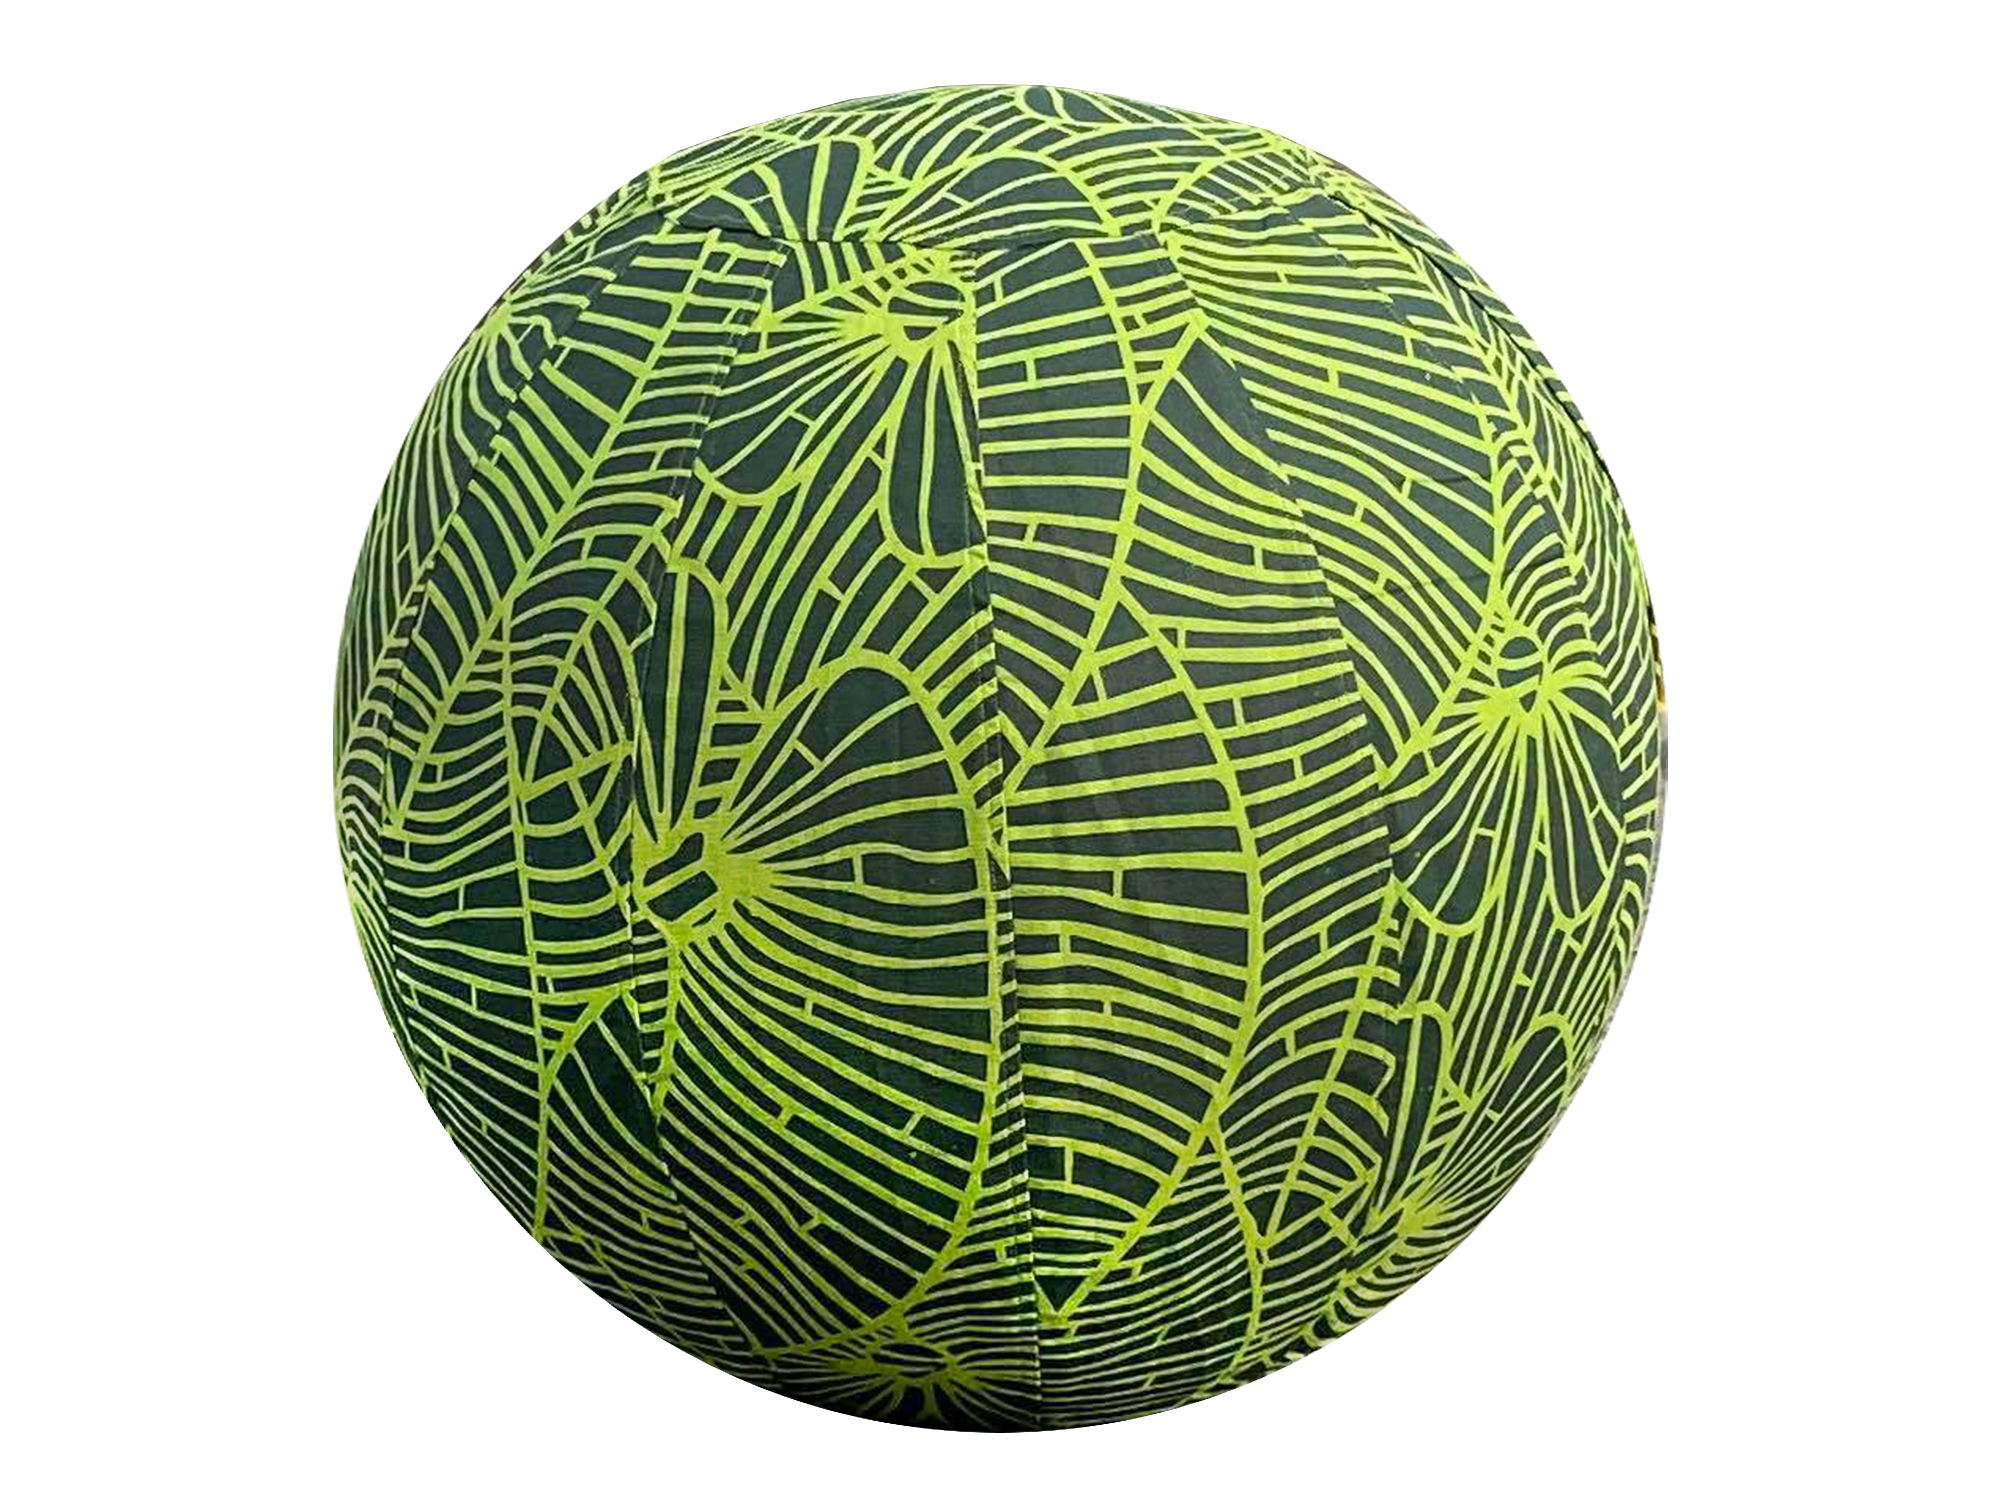 55cm Balance Ball / Yoga Ball Cover: Jungle Green Palm Leaf